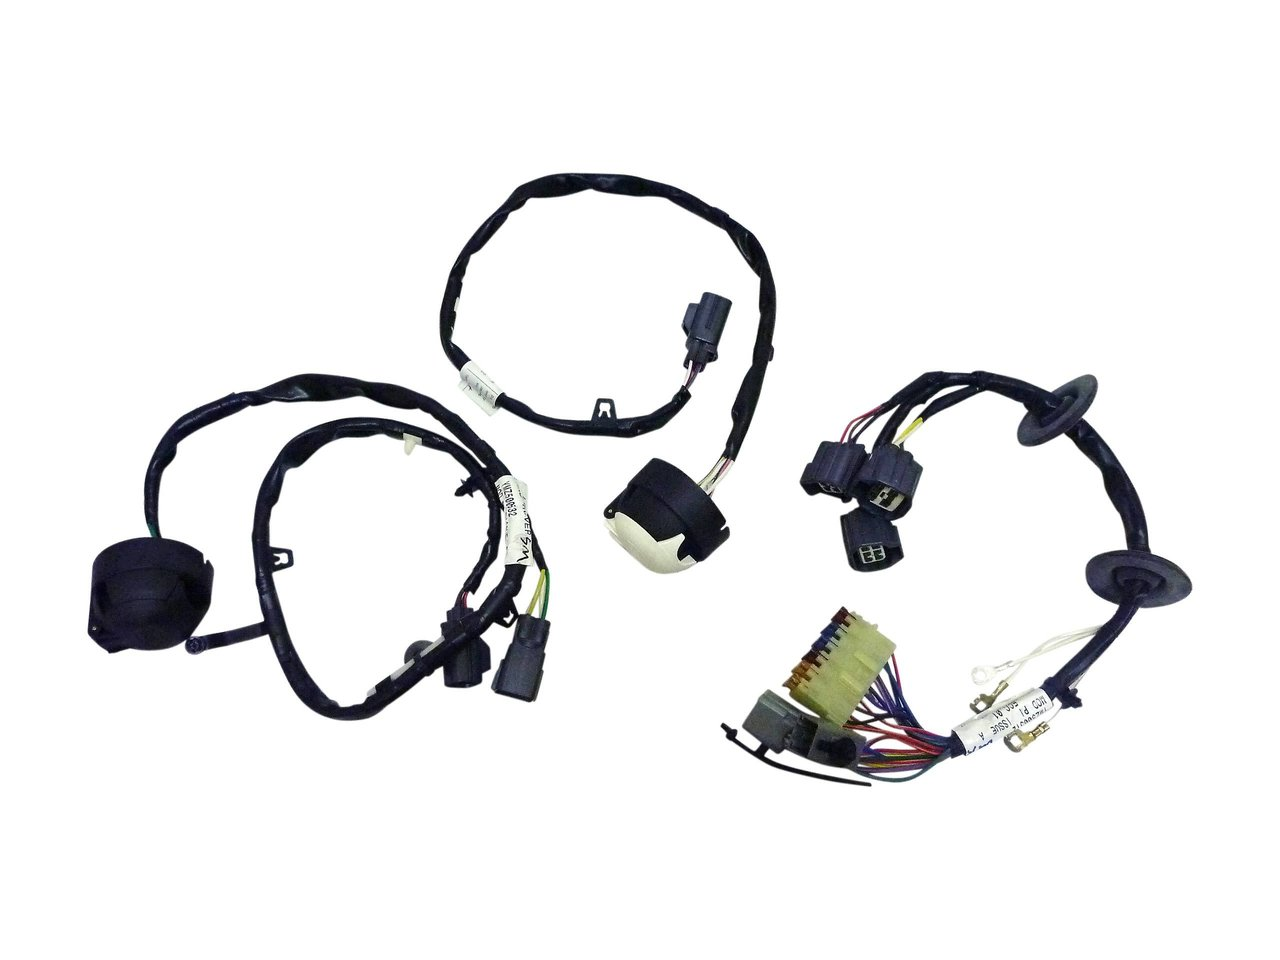 Trailer Wiring Harness Two Plug Land Rover Discovery 3 Genuine Diagram Aftermarket Ywj500201